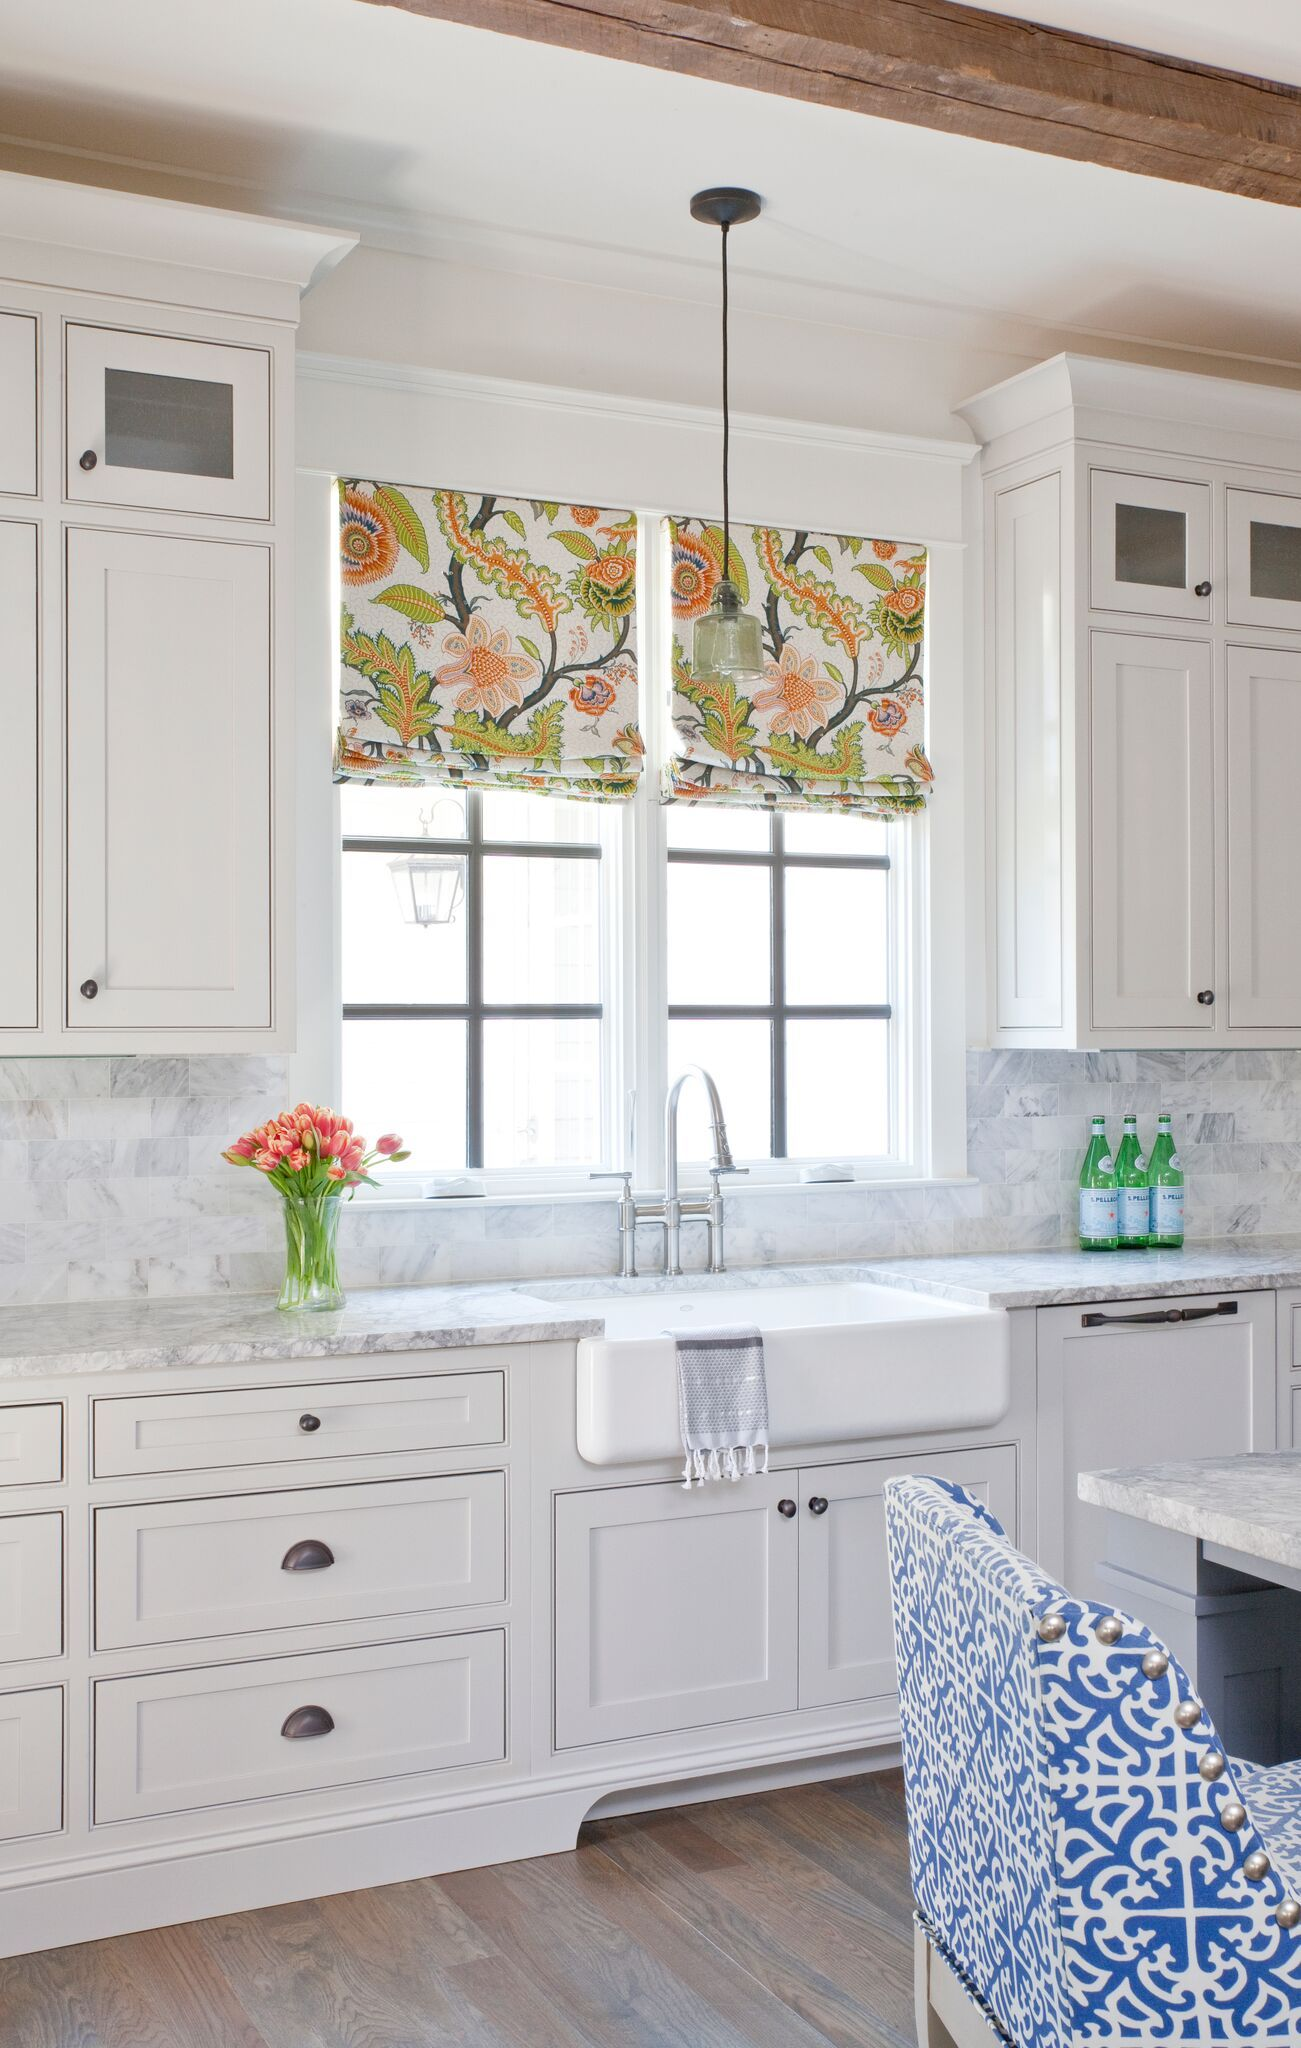 This White Kitchen Has a Colorful Personality! | Schumacher ...